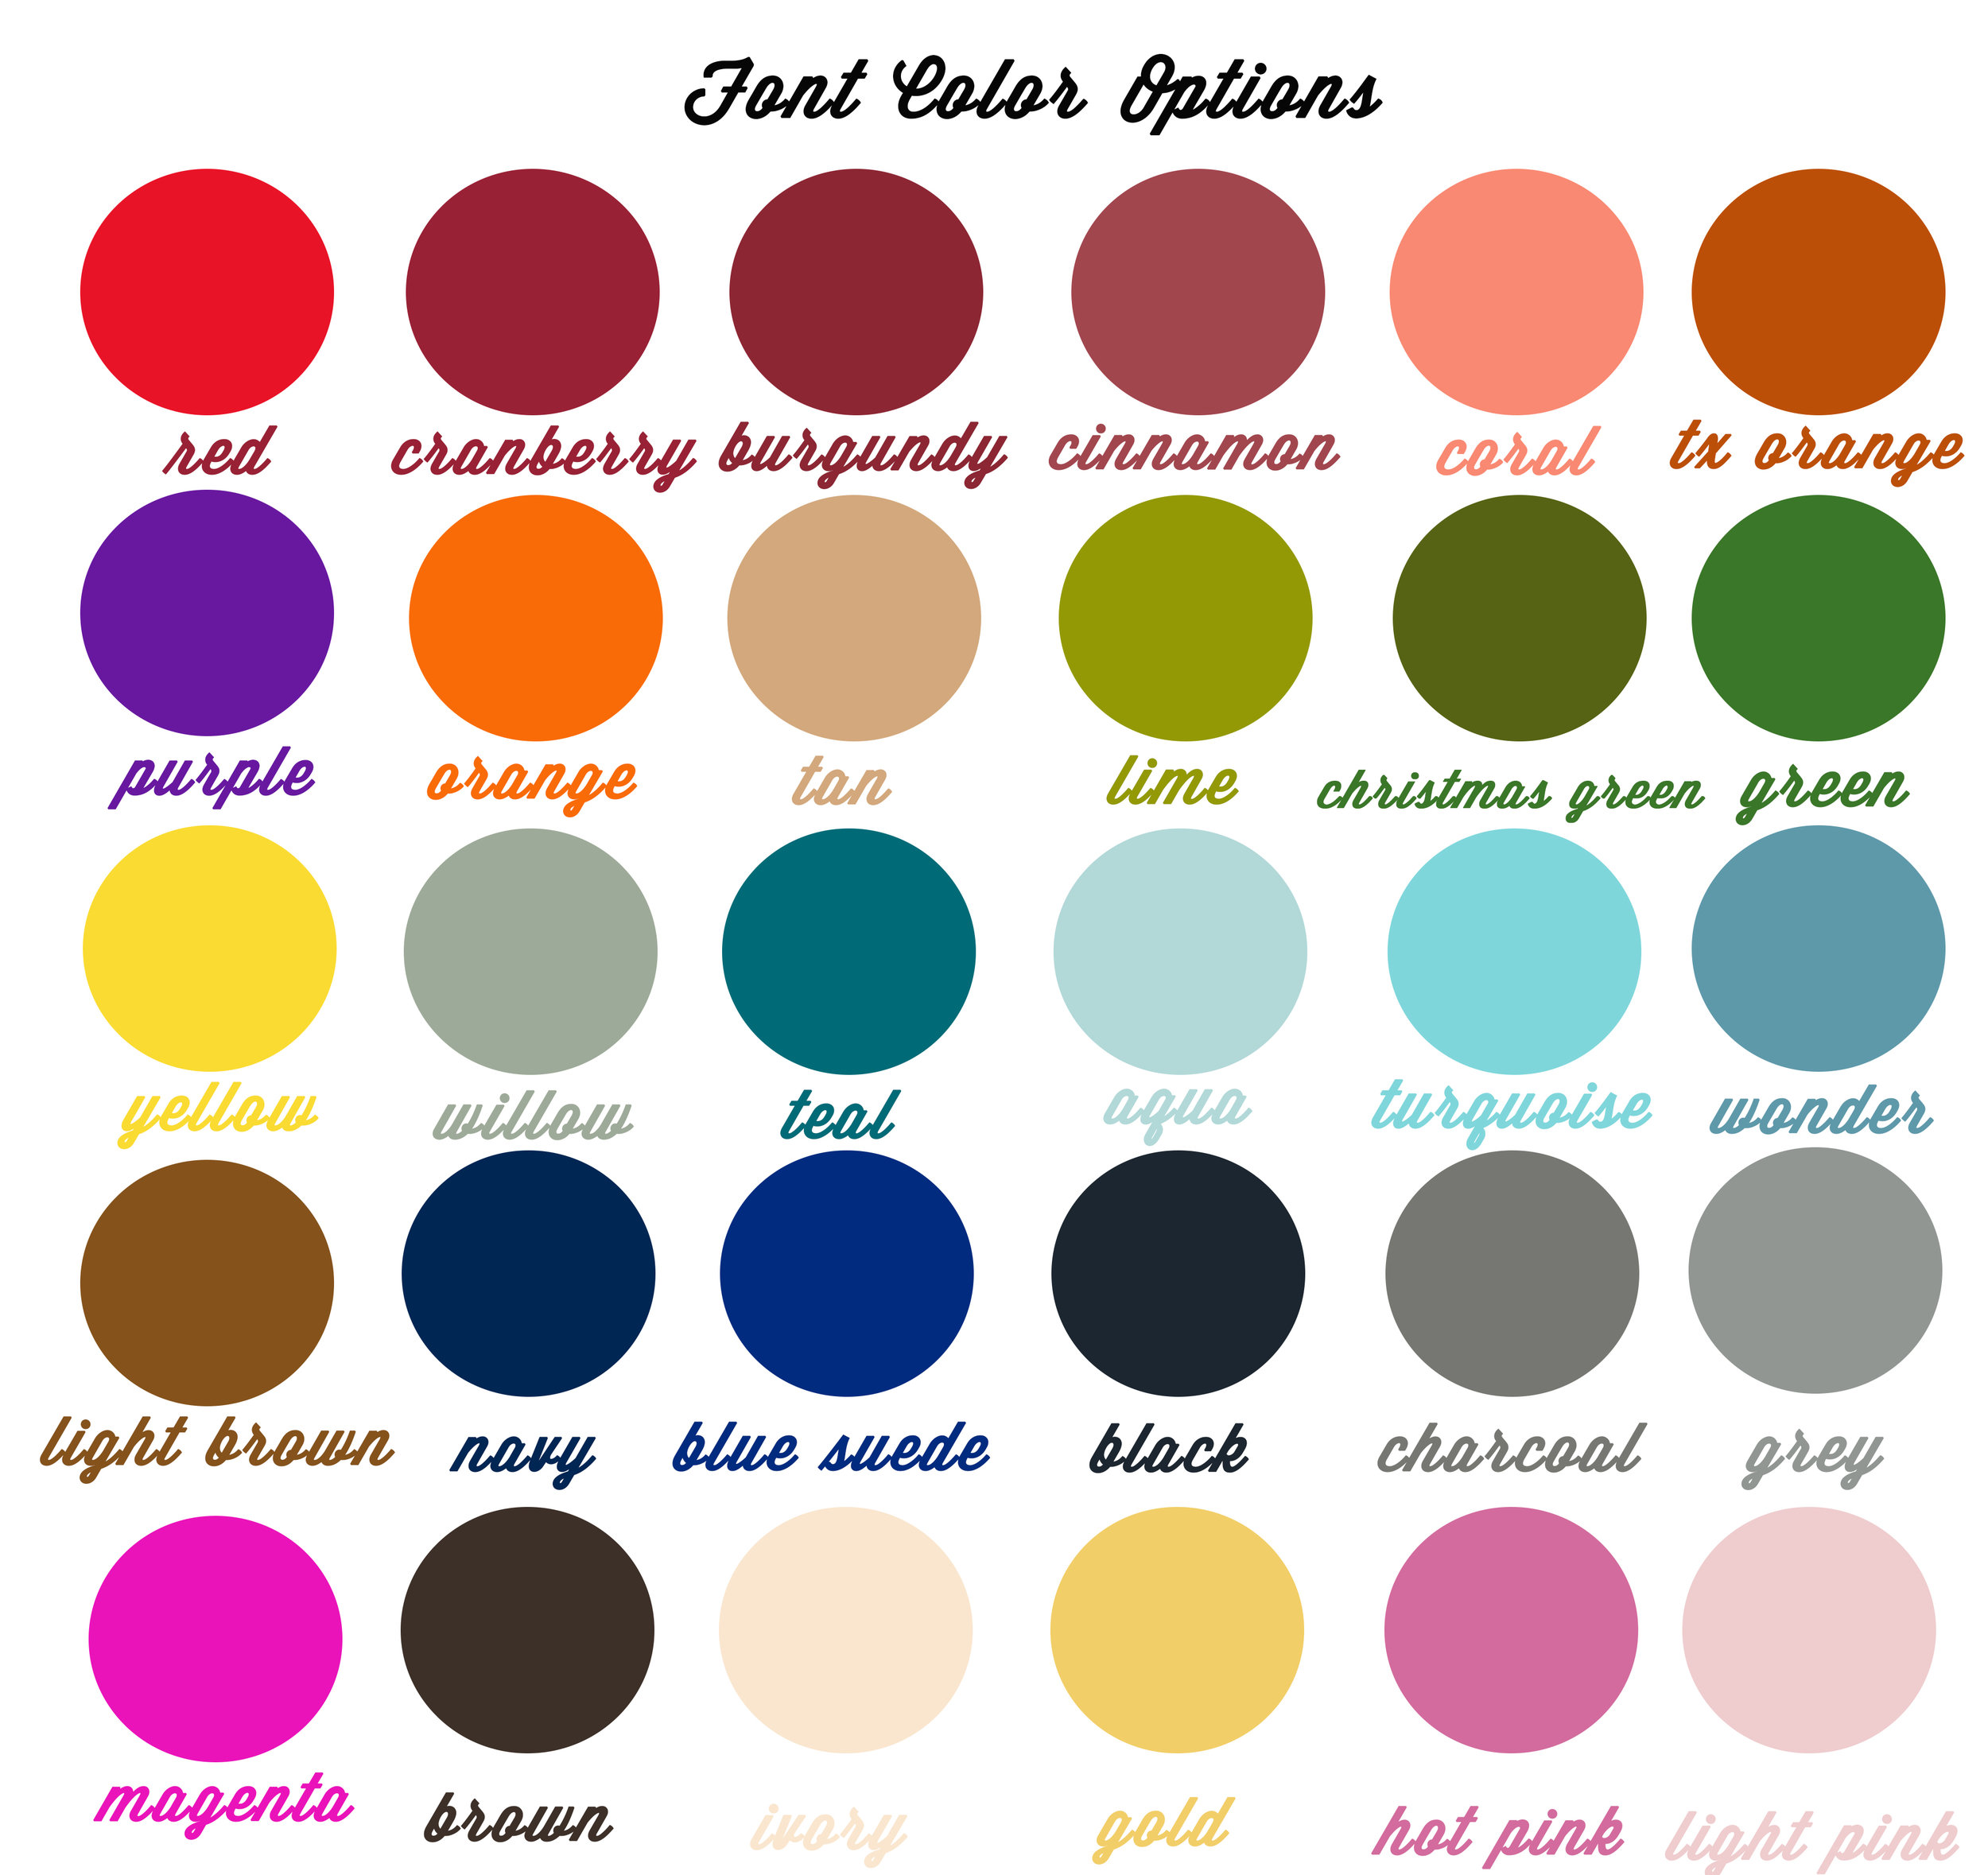 Color choices.jpg